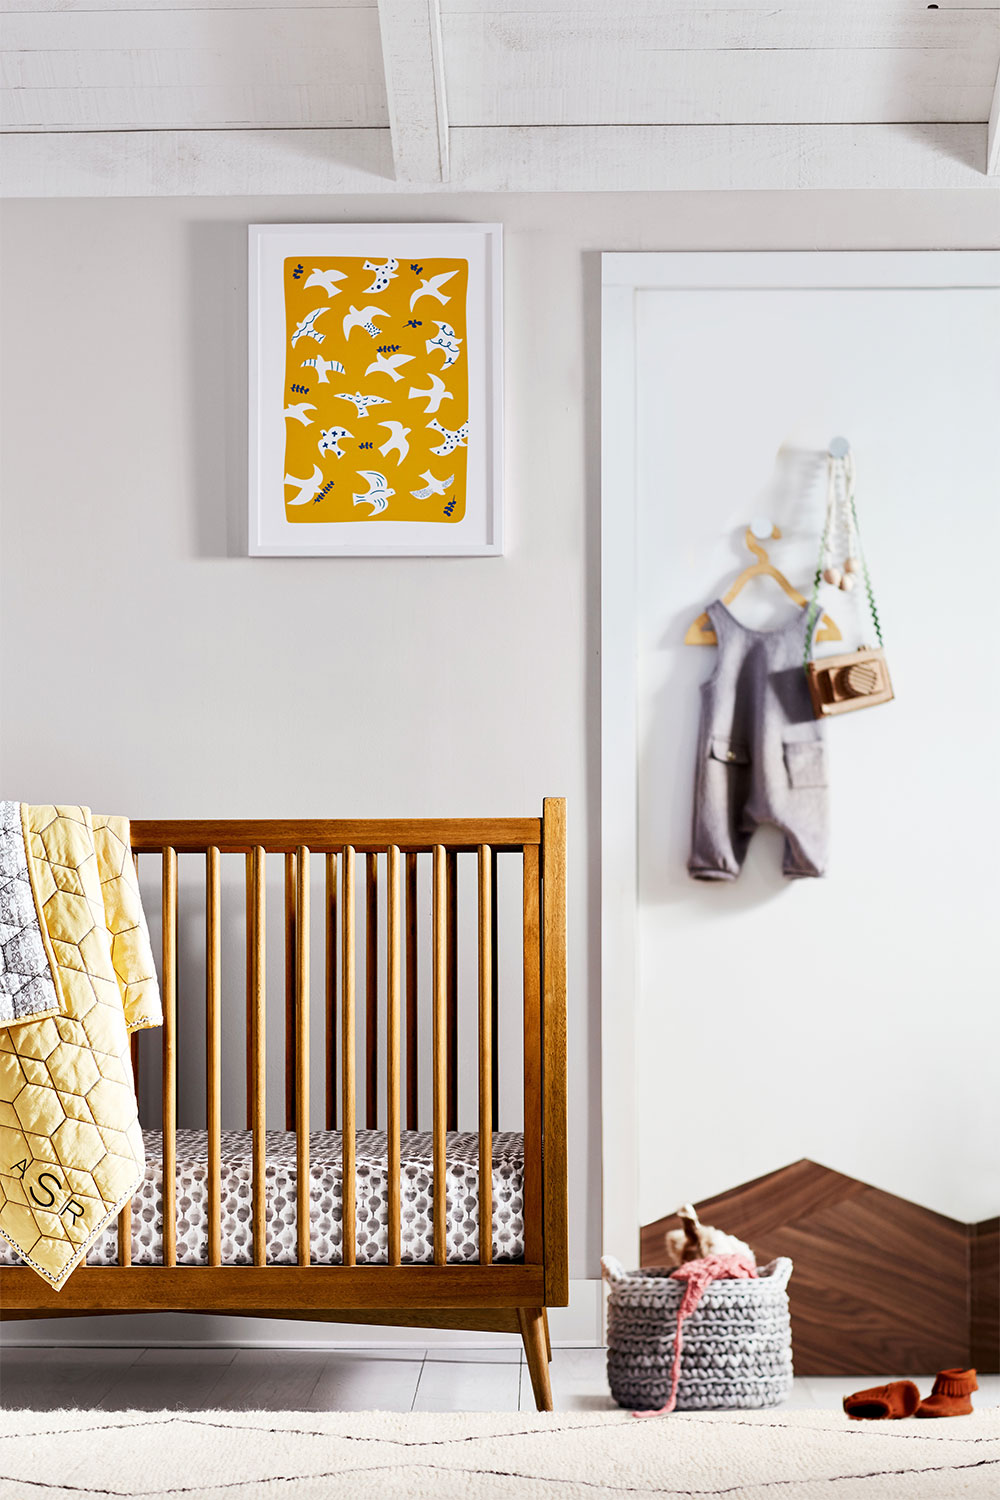 West Elm And Pottery Barn Kids Launch New Nursery Collection Home Beautiful Magazine Australia